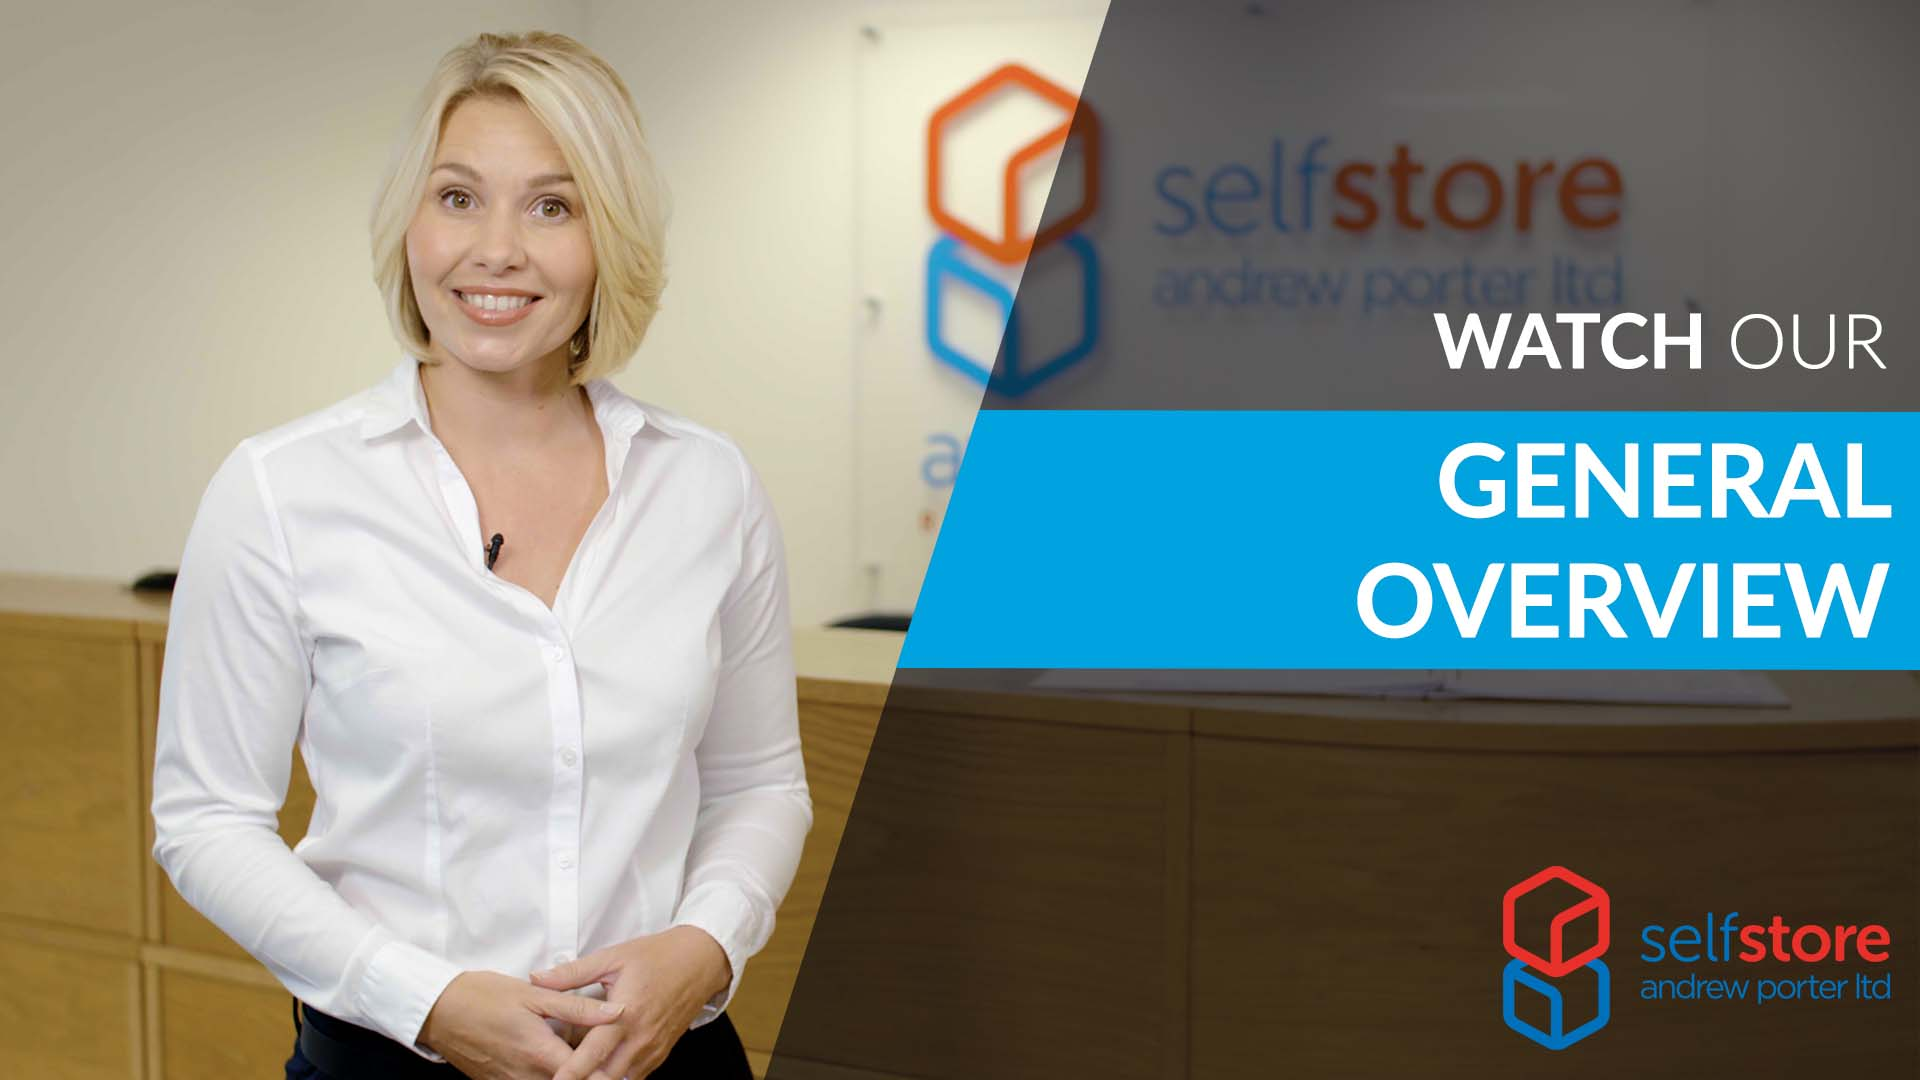 Find out what makes Self Store @ APL fantastic